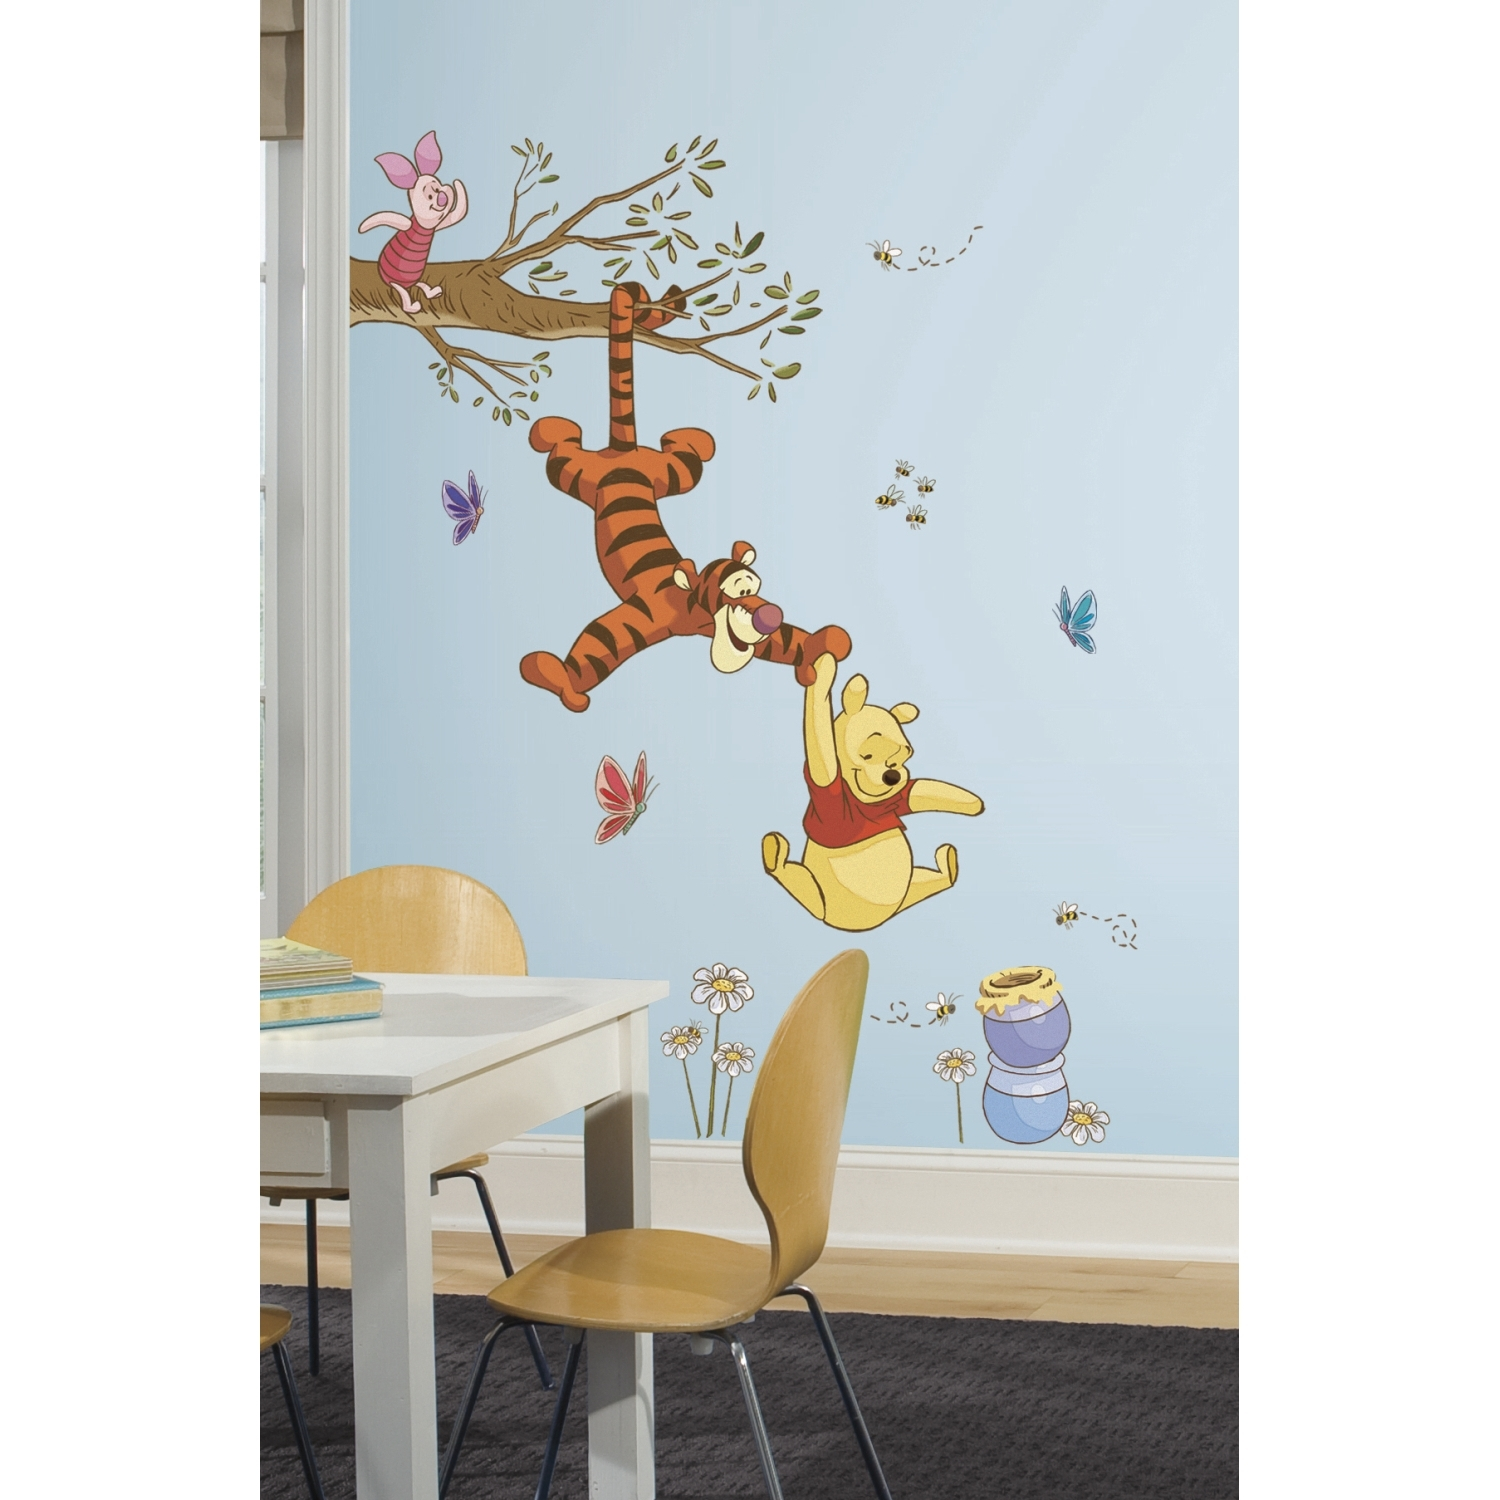 Newest Bring The Magic Home With These Winnie The Pooh Wall Decals Regarding Winnie The Pooh Wall Decor (View 10 of 15)